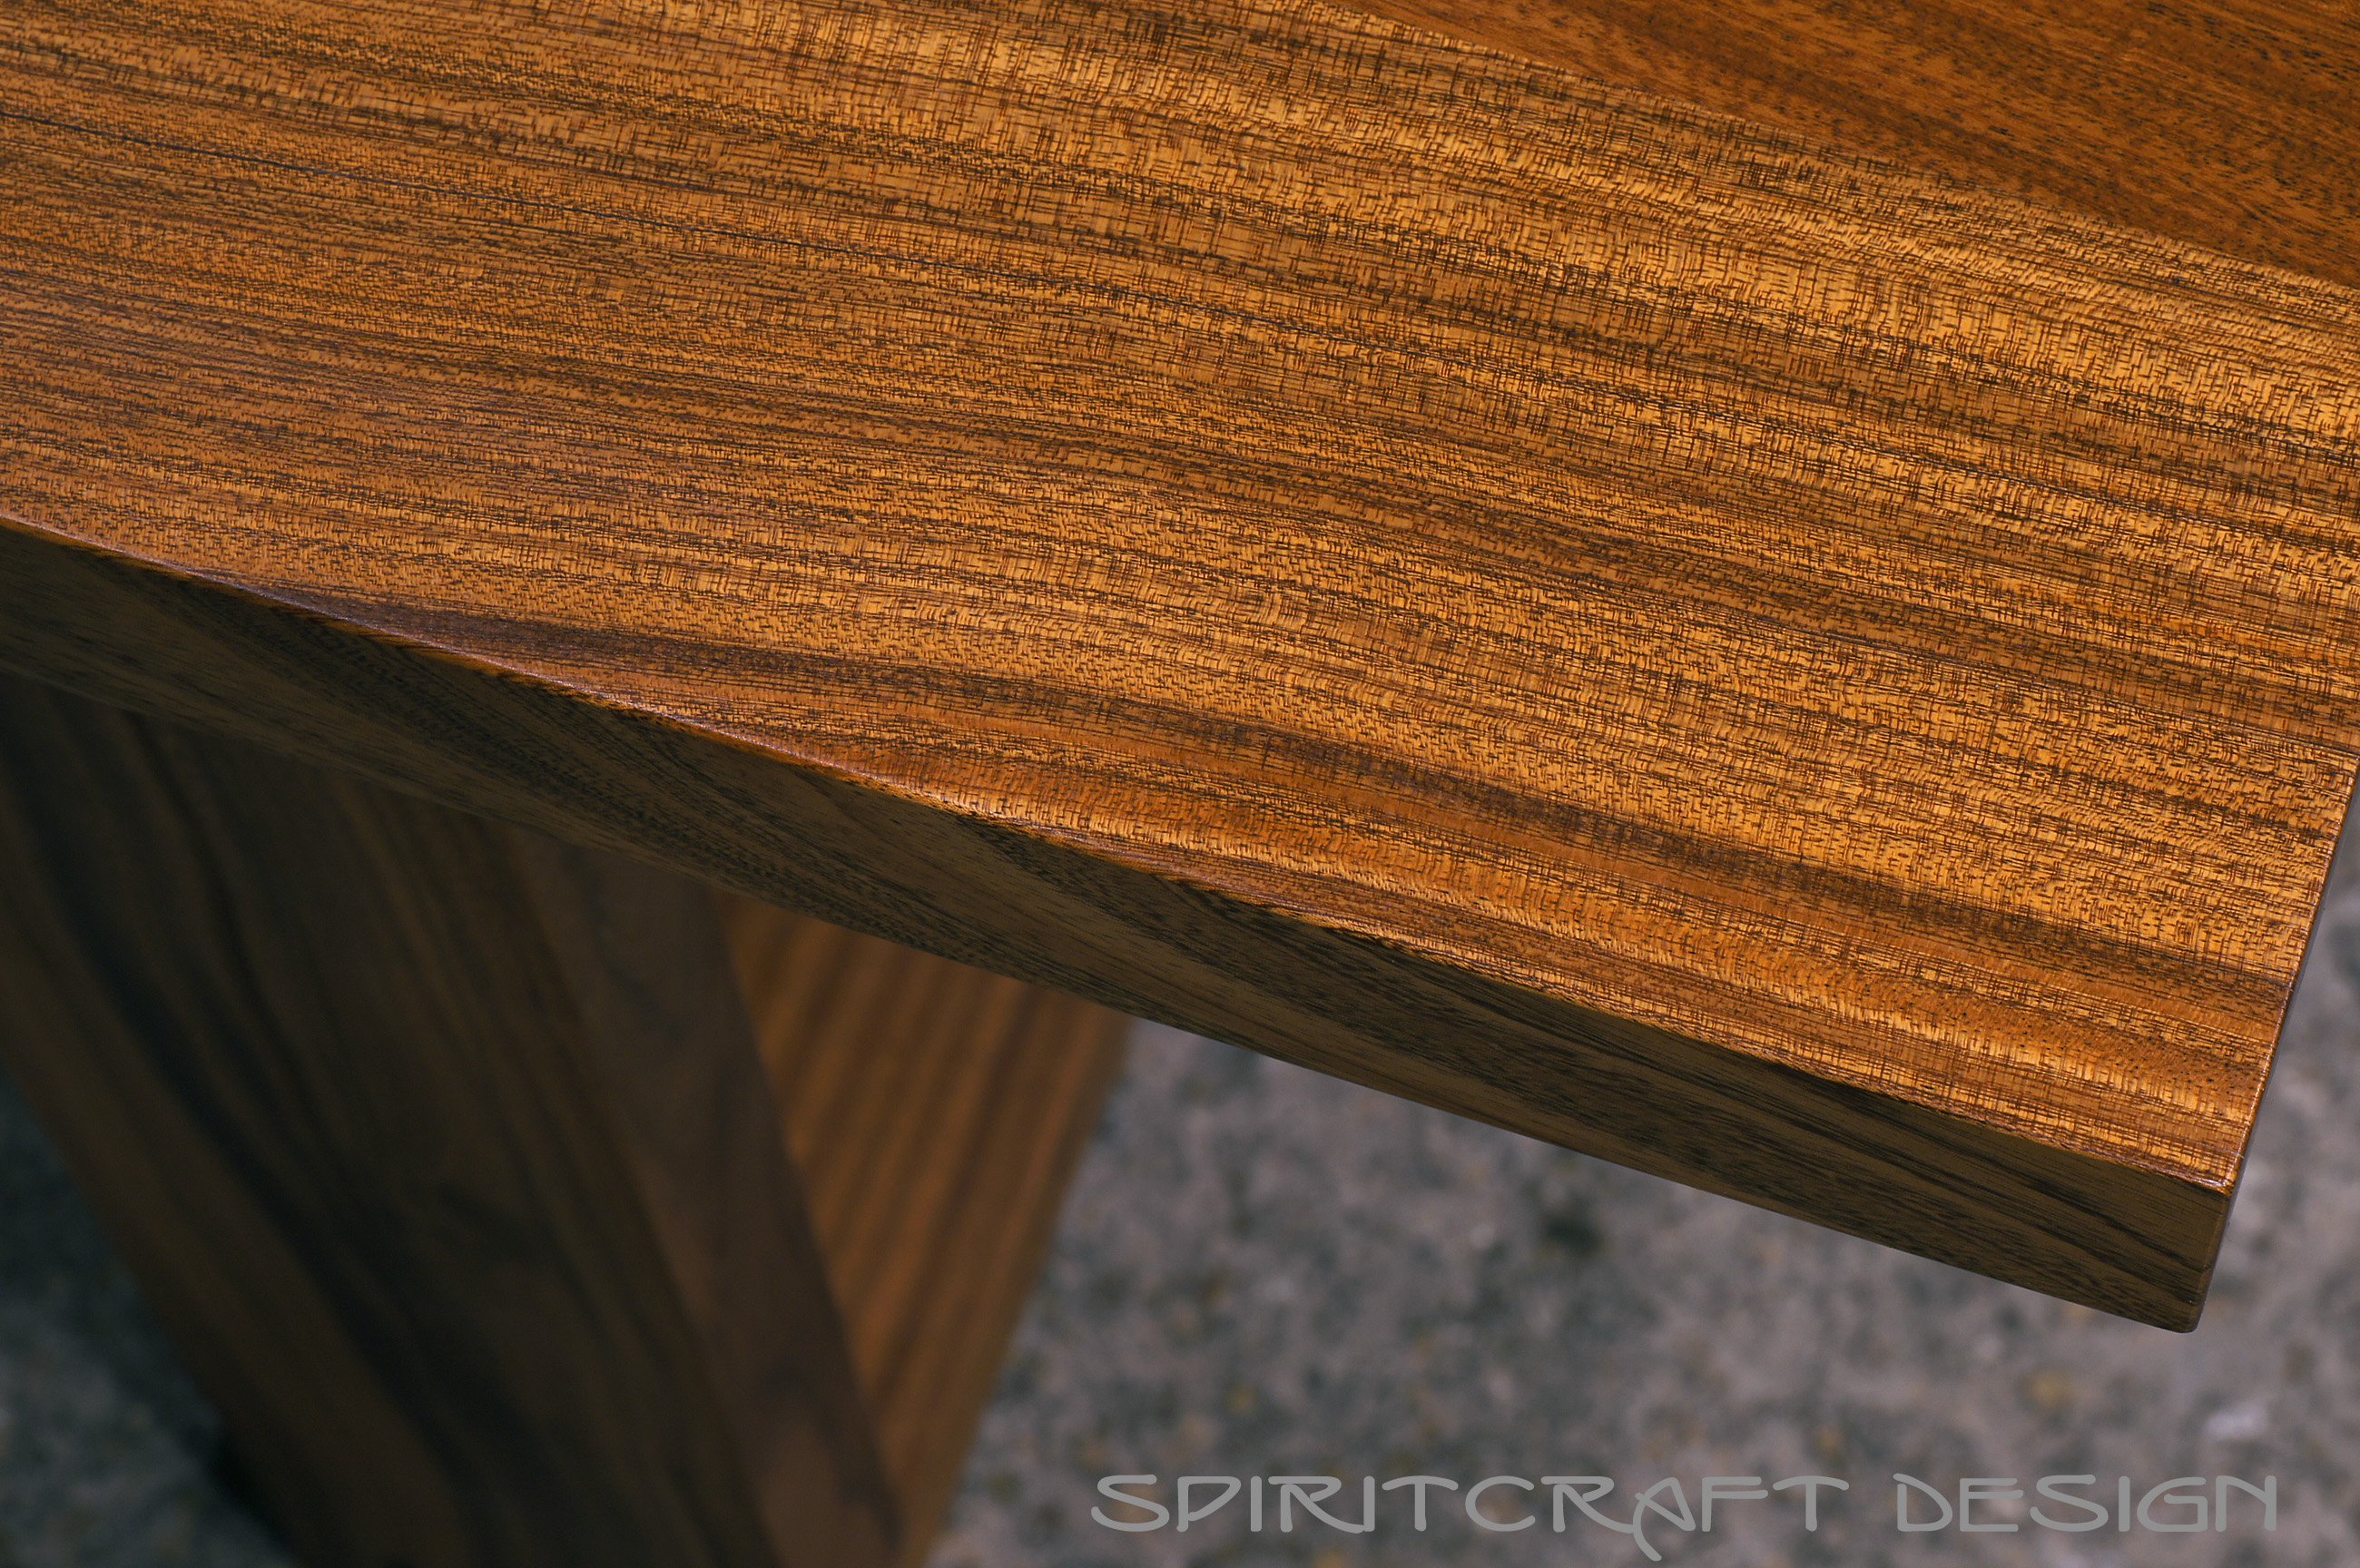 Mid Century Modern Slab Table In Sapele Mahogany And Wenge At Spiritcraft  Interior Design Furniture Showroom